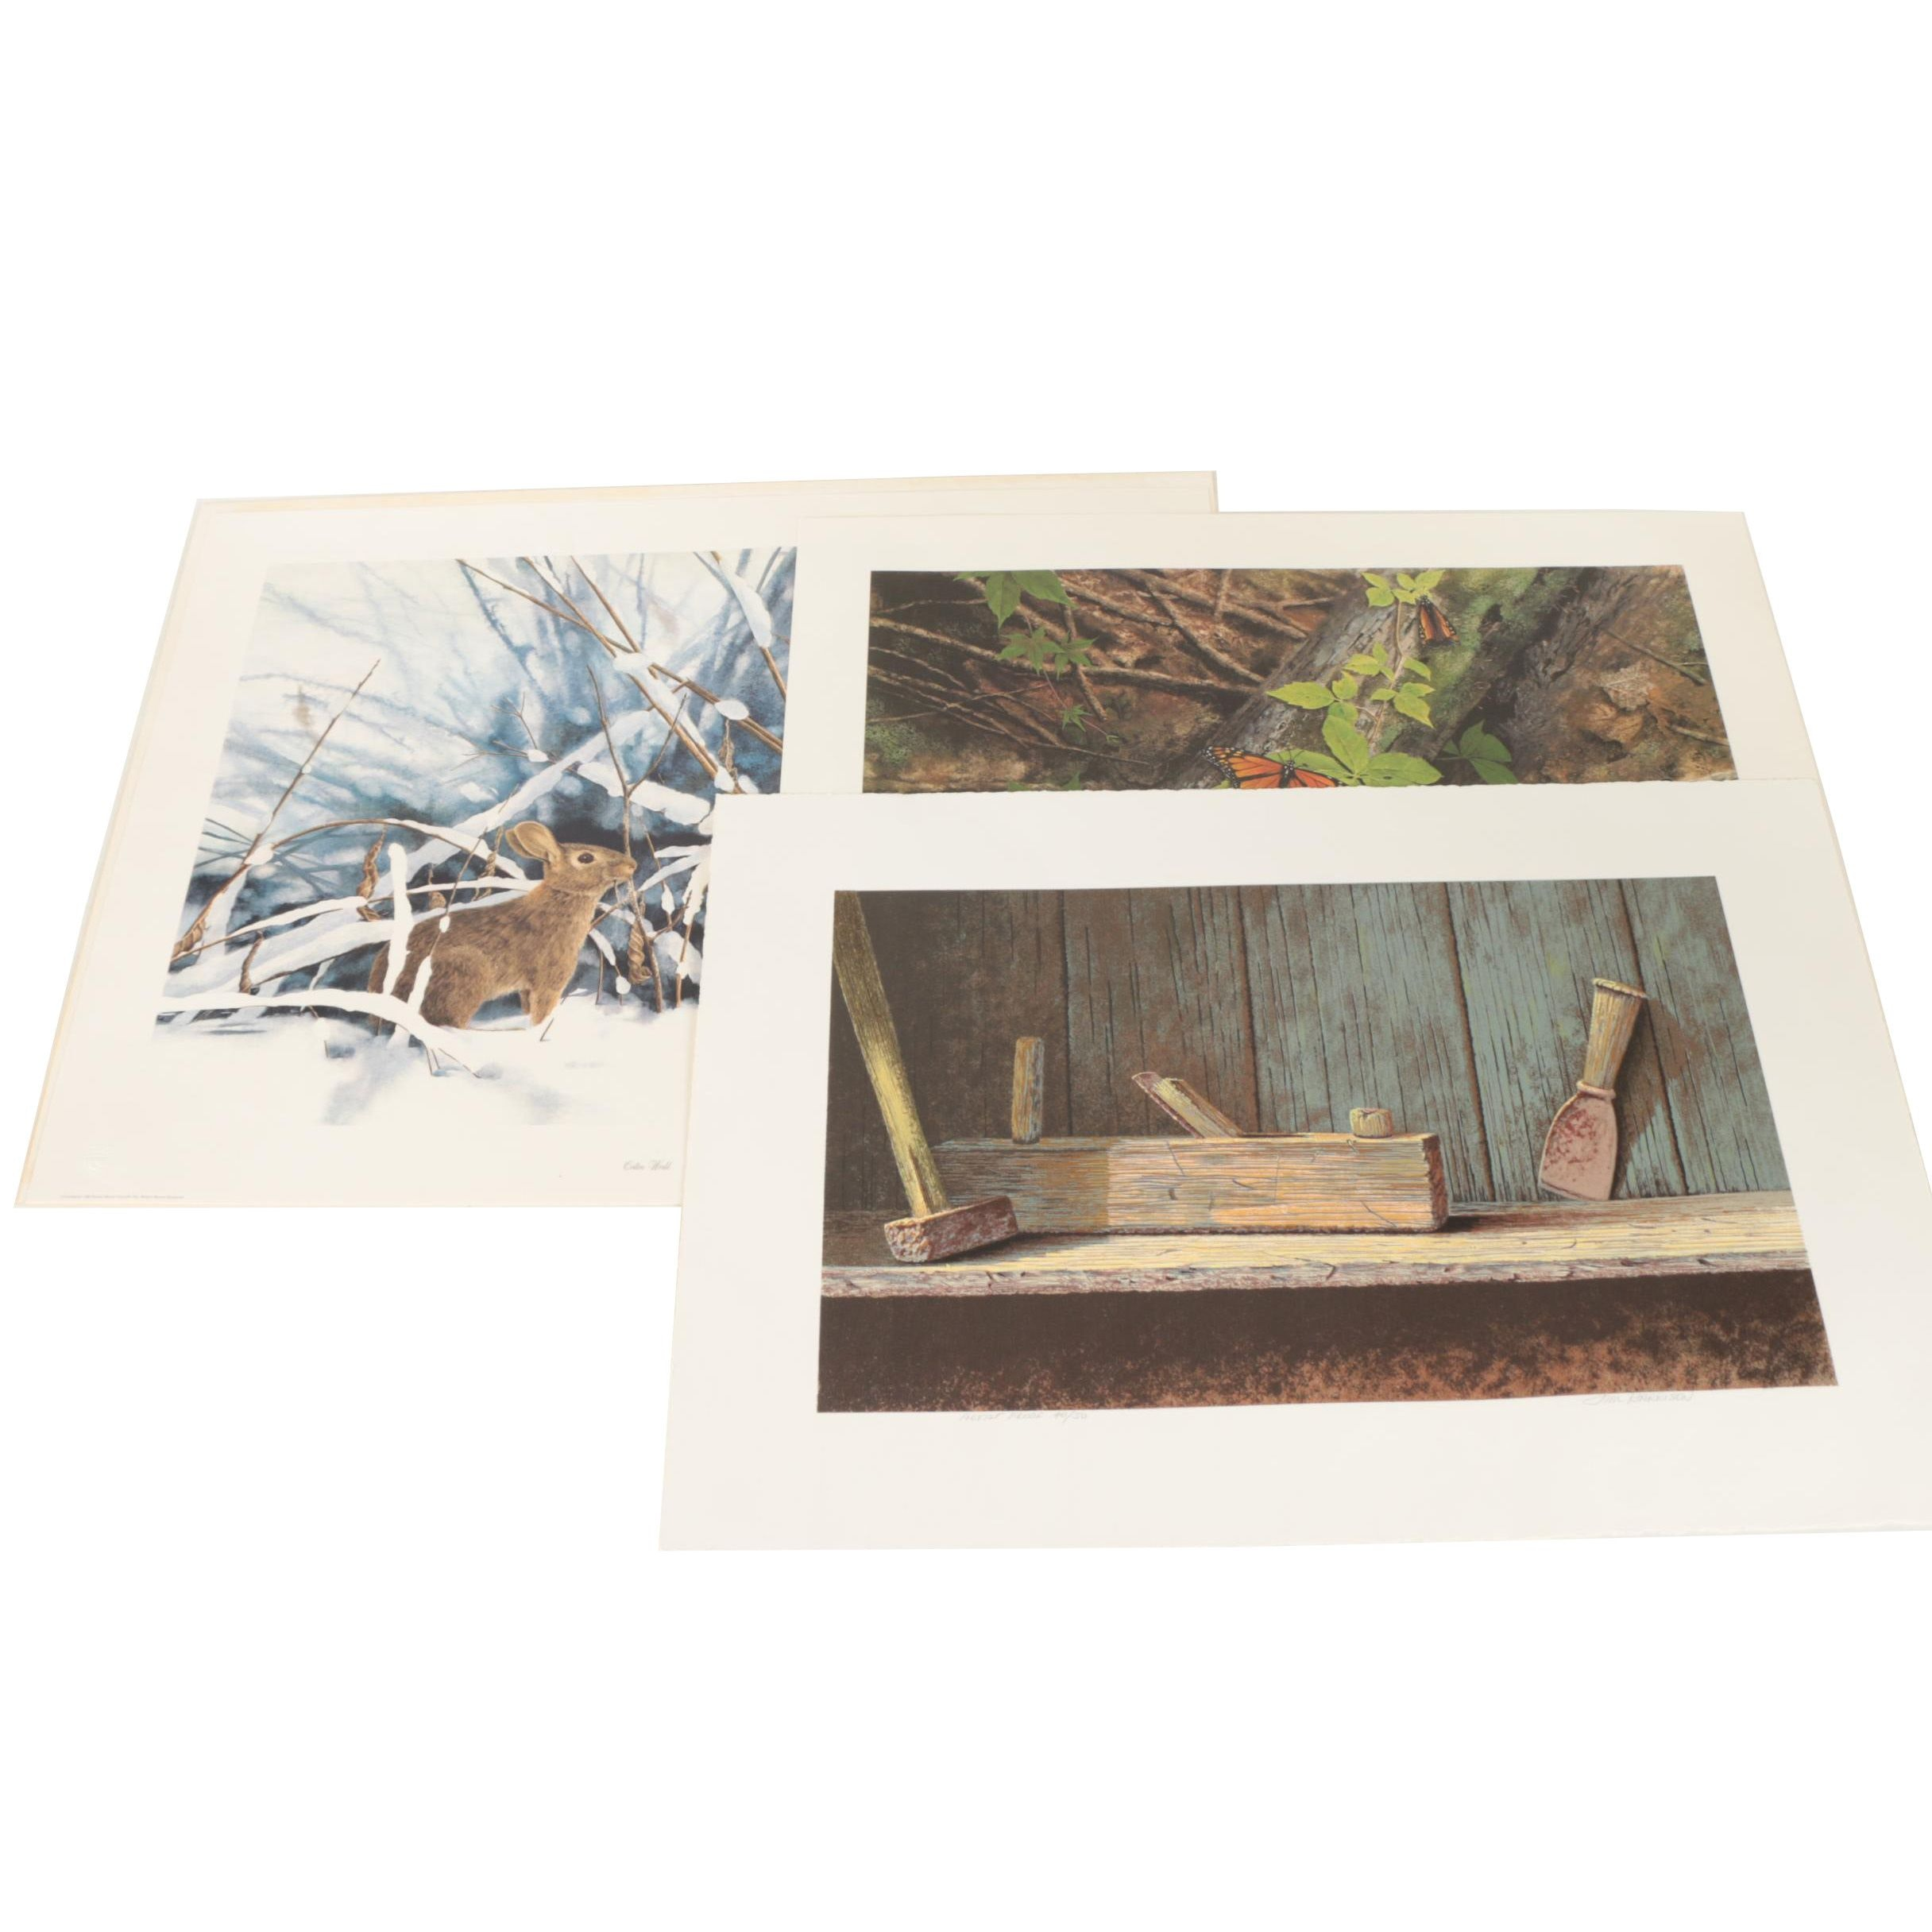 Jim Harrison Limited Edition Monotype and Offset Lithograph Prints on Paper